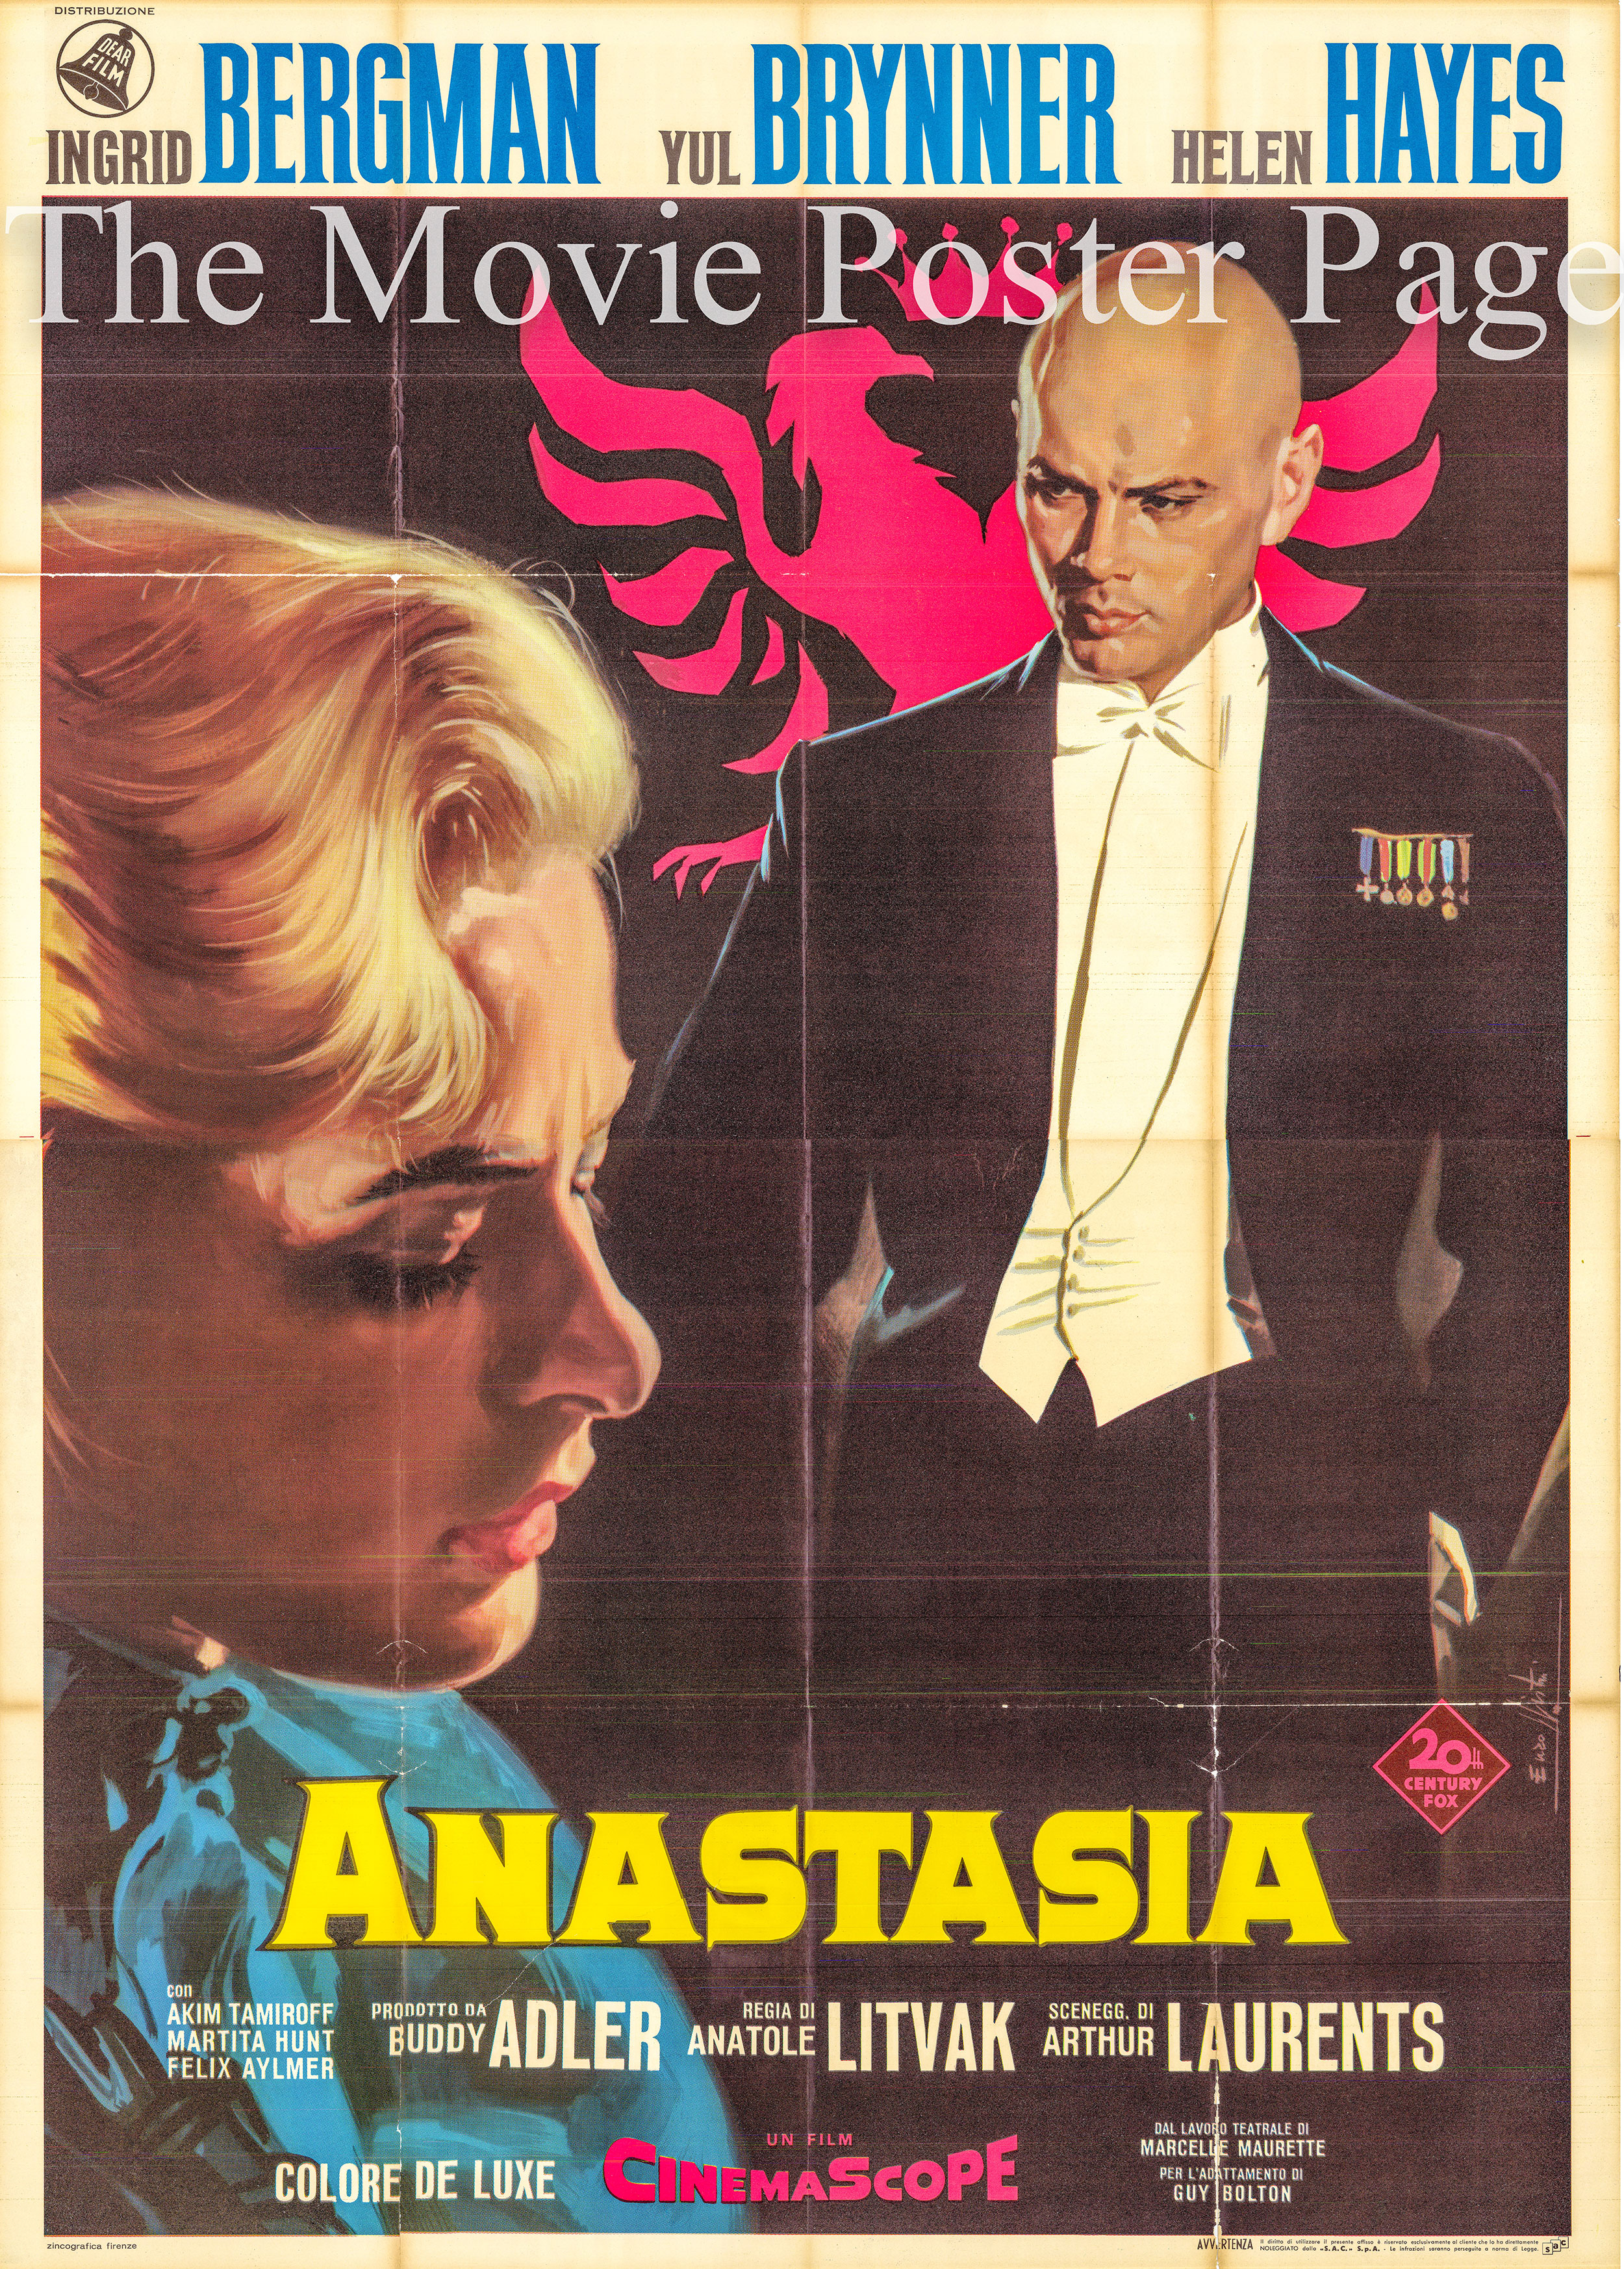 Pictured is and Italian four-sheet promotional poster for the 1956 Anatole Litvak film Anastasia starring Ingrid Bergman.